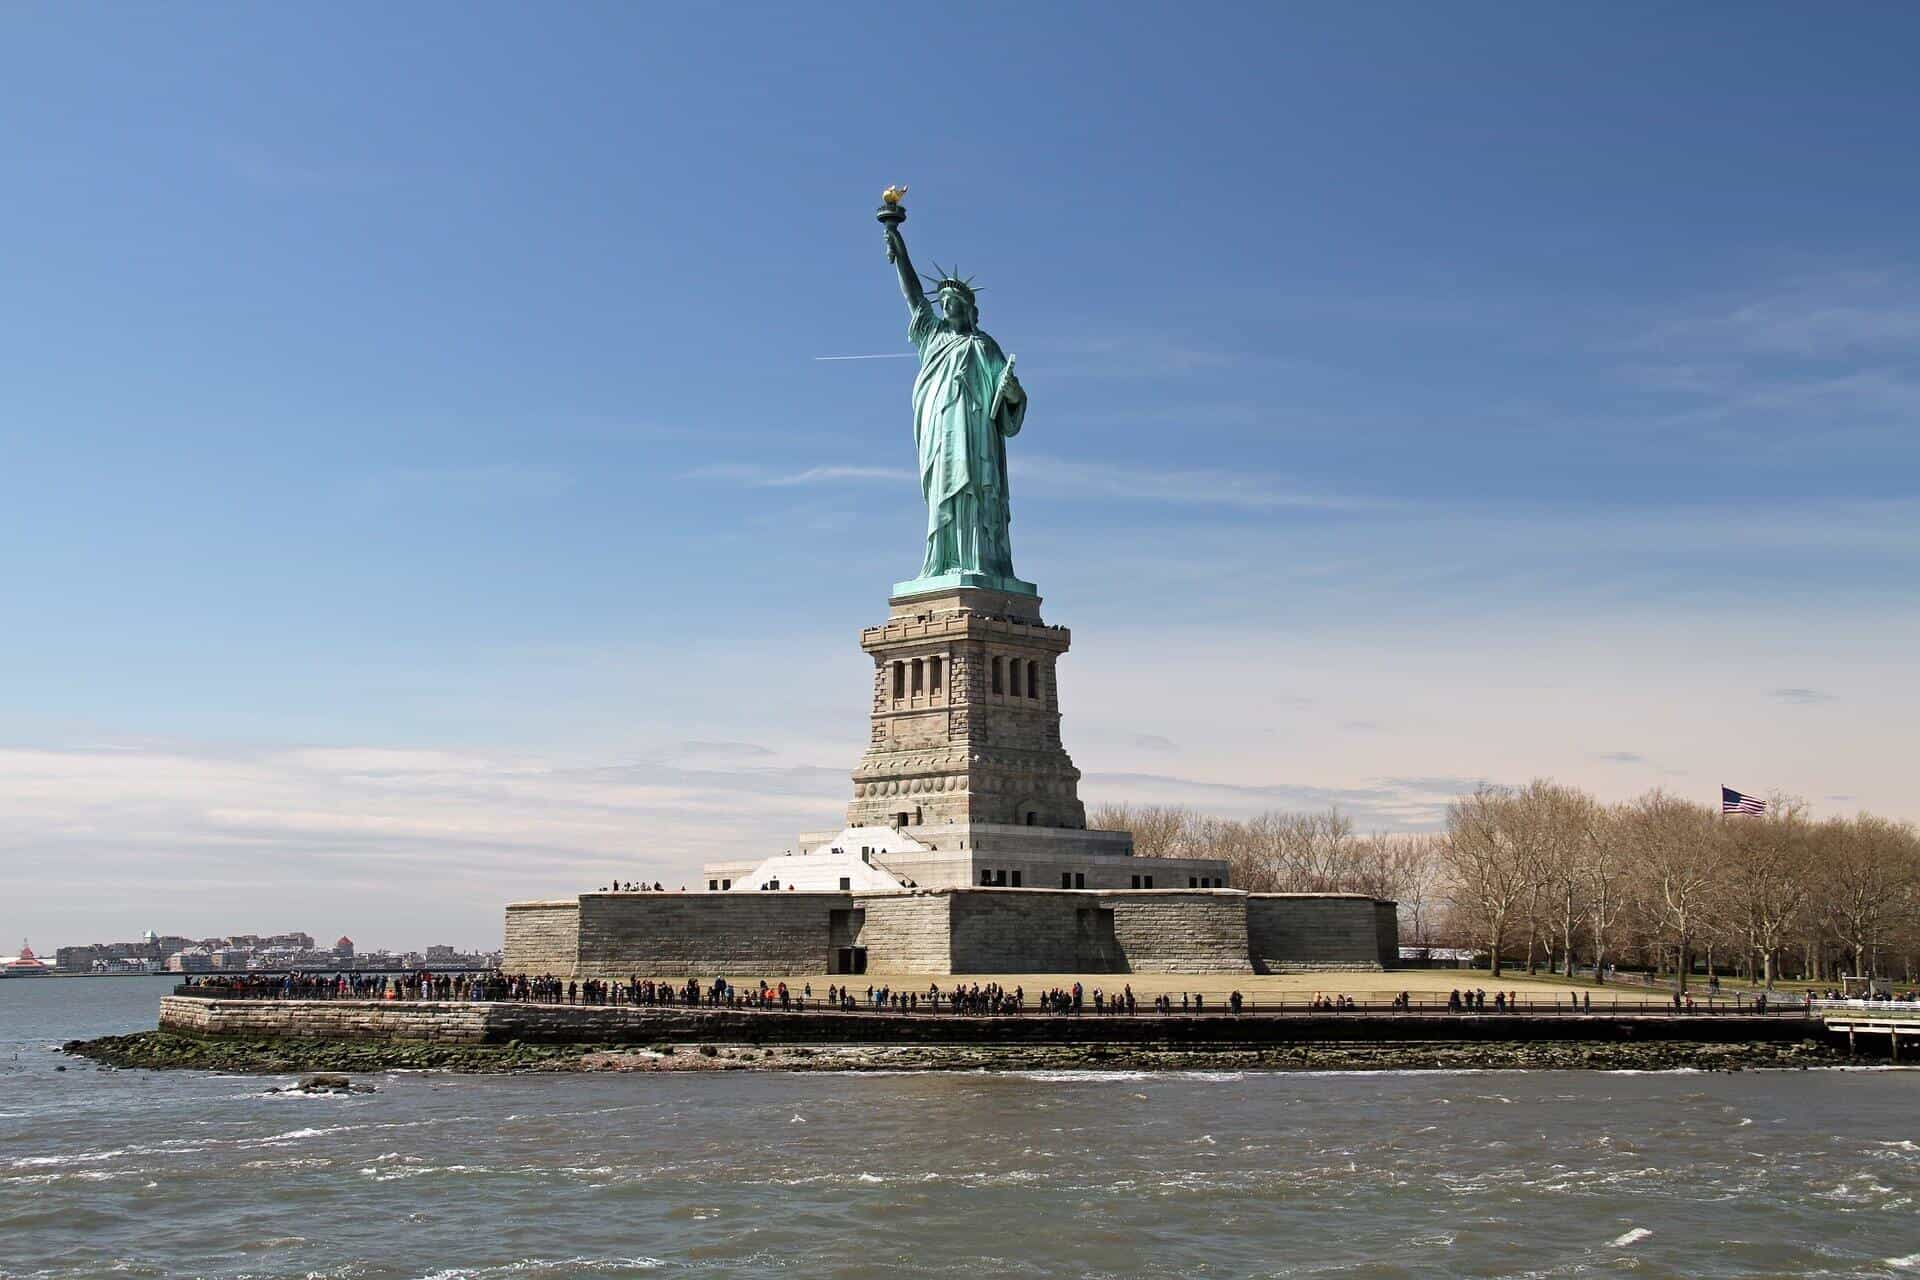 new-york-city-travel-guide-where-to-go-and-what-to-see-statue-of-Liberty